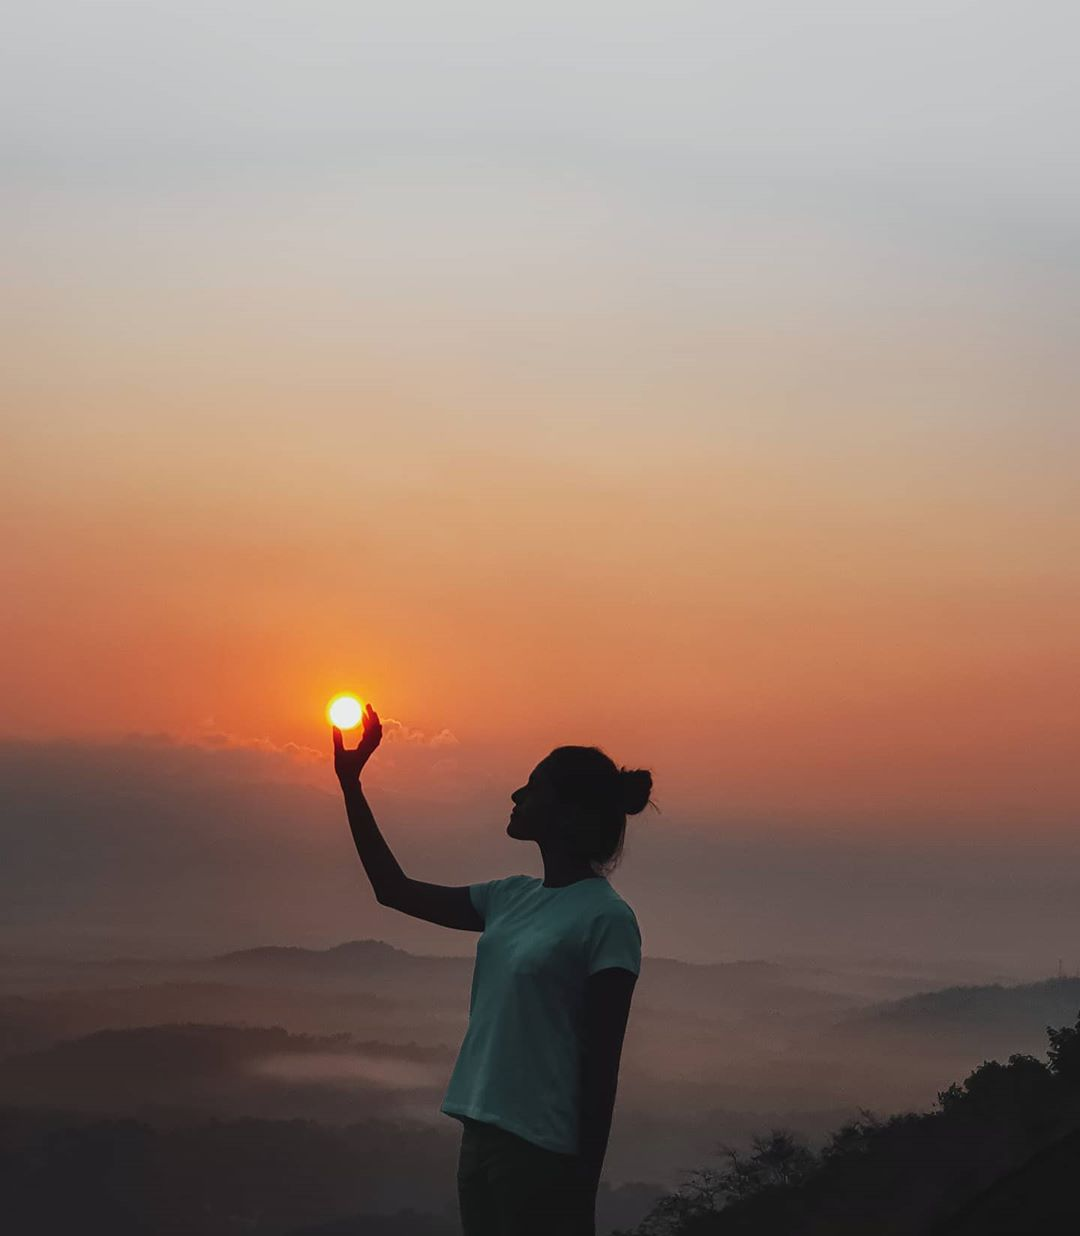 Grabbing the Sun with Hand